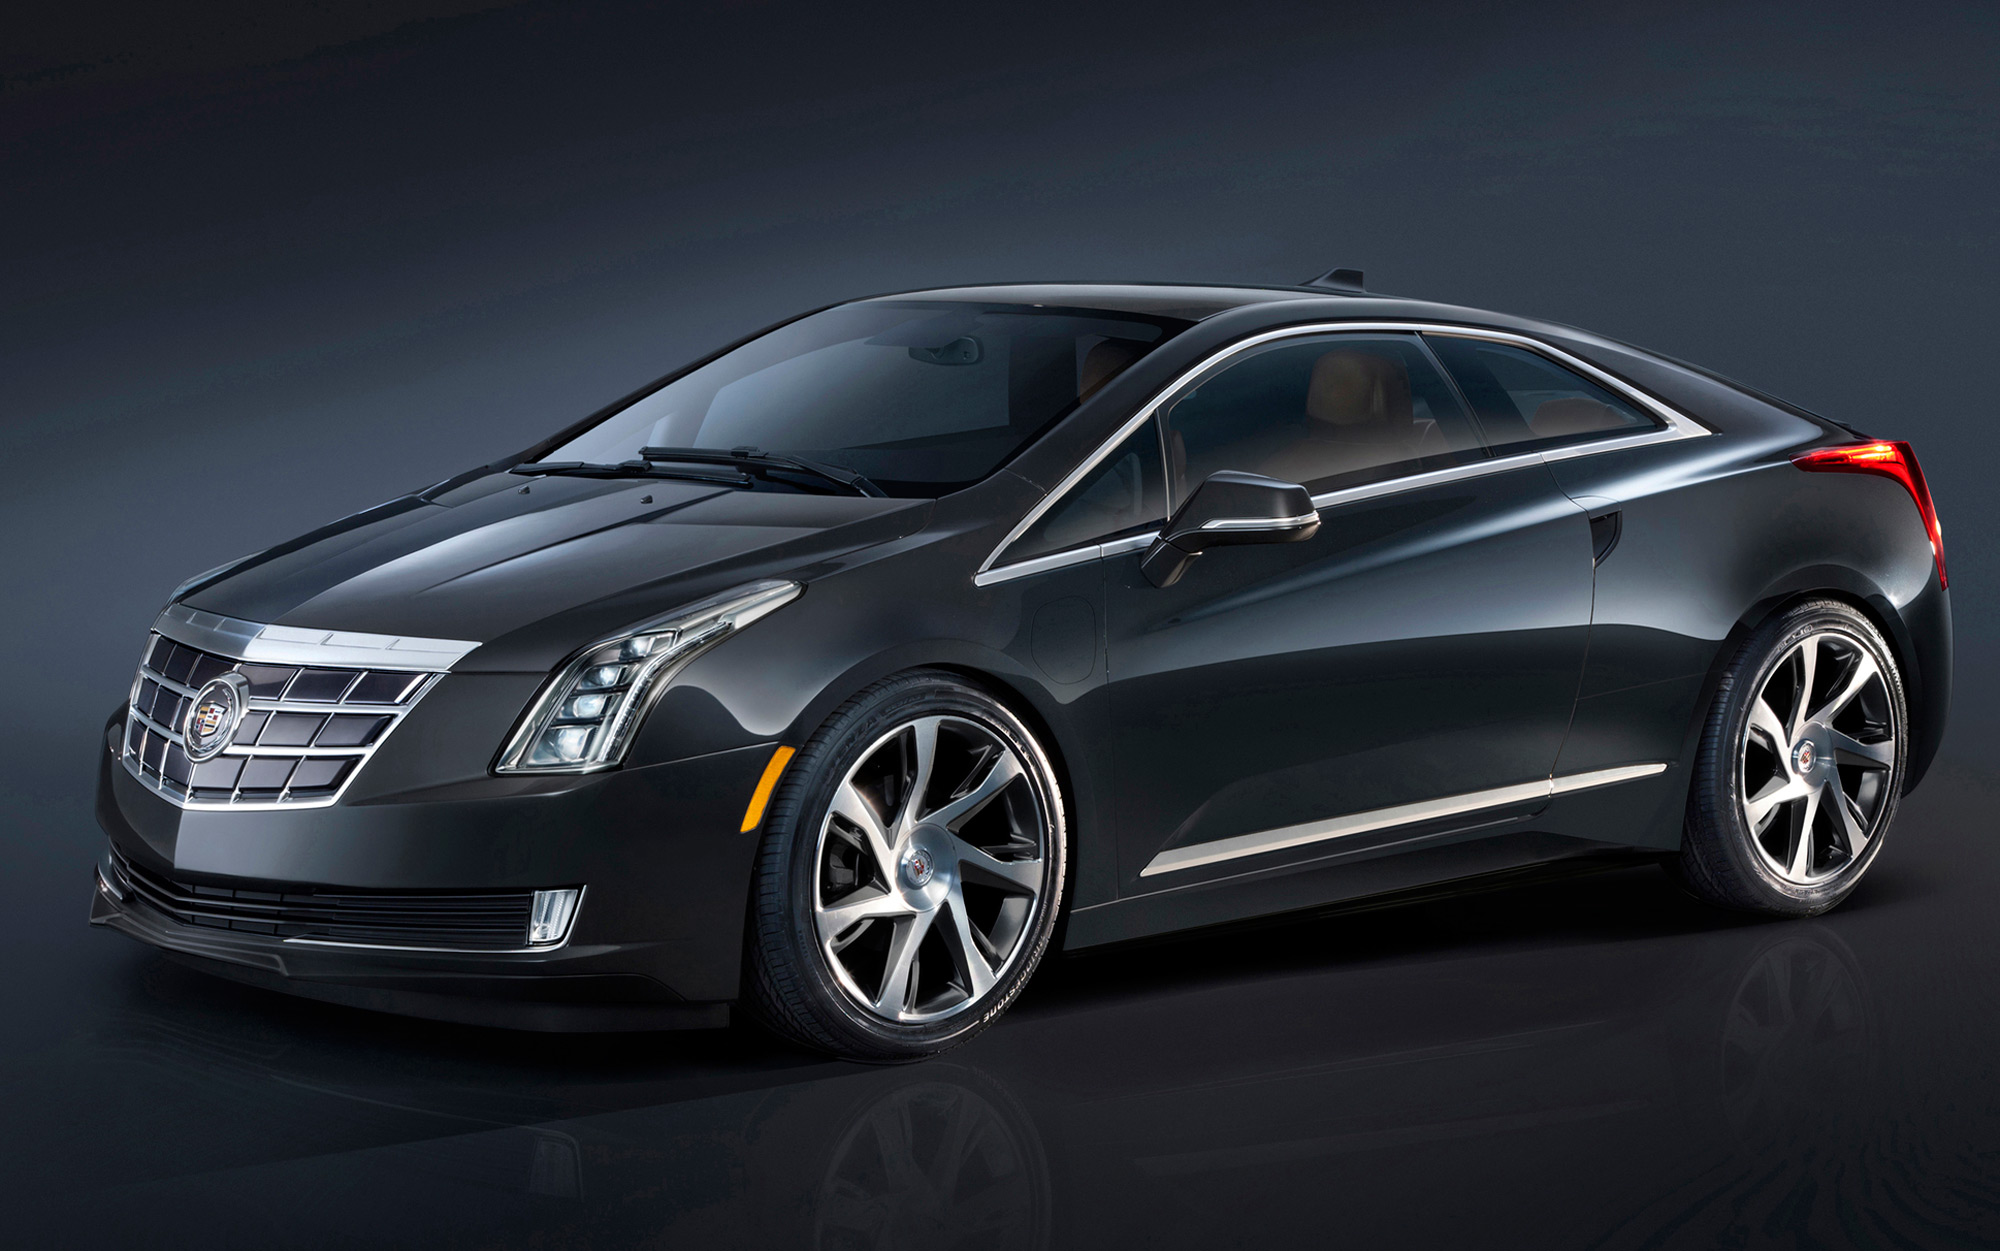 2014 Cadillac ELR Front Three Quarter 2 Wallpapers HD